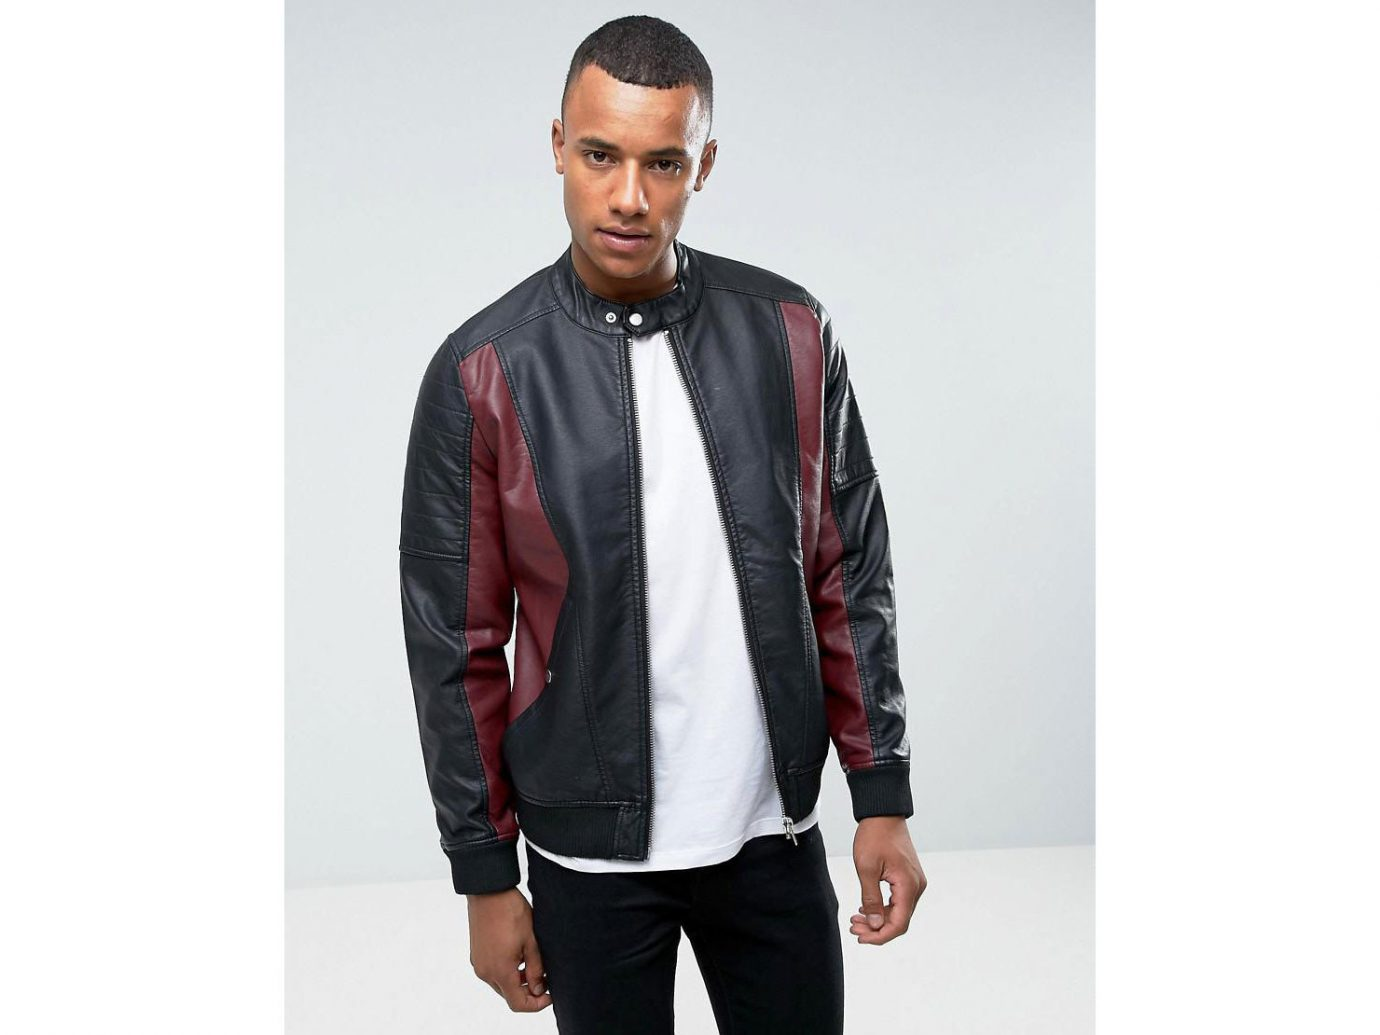 Packing Tips Style + Design Travel Shop person man suit jacket leather jacket standing posing wearing leather textile outerwear formal wear material gentleman dressed sleeve facial hair neck blazer clothing